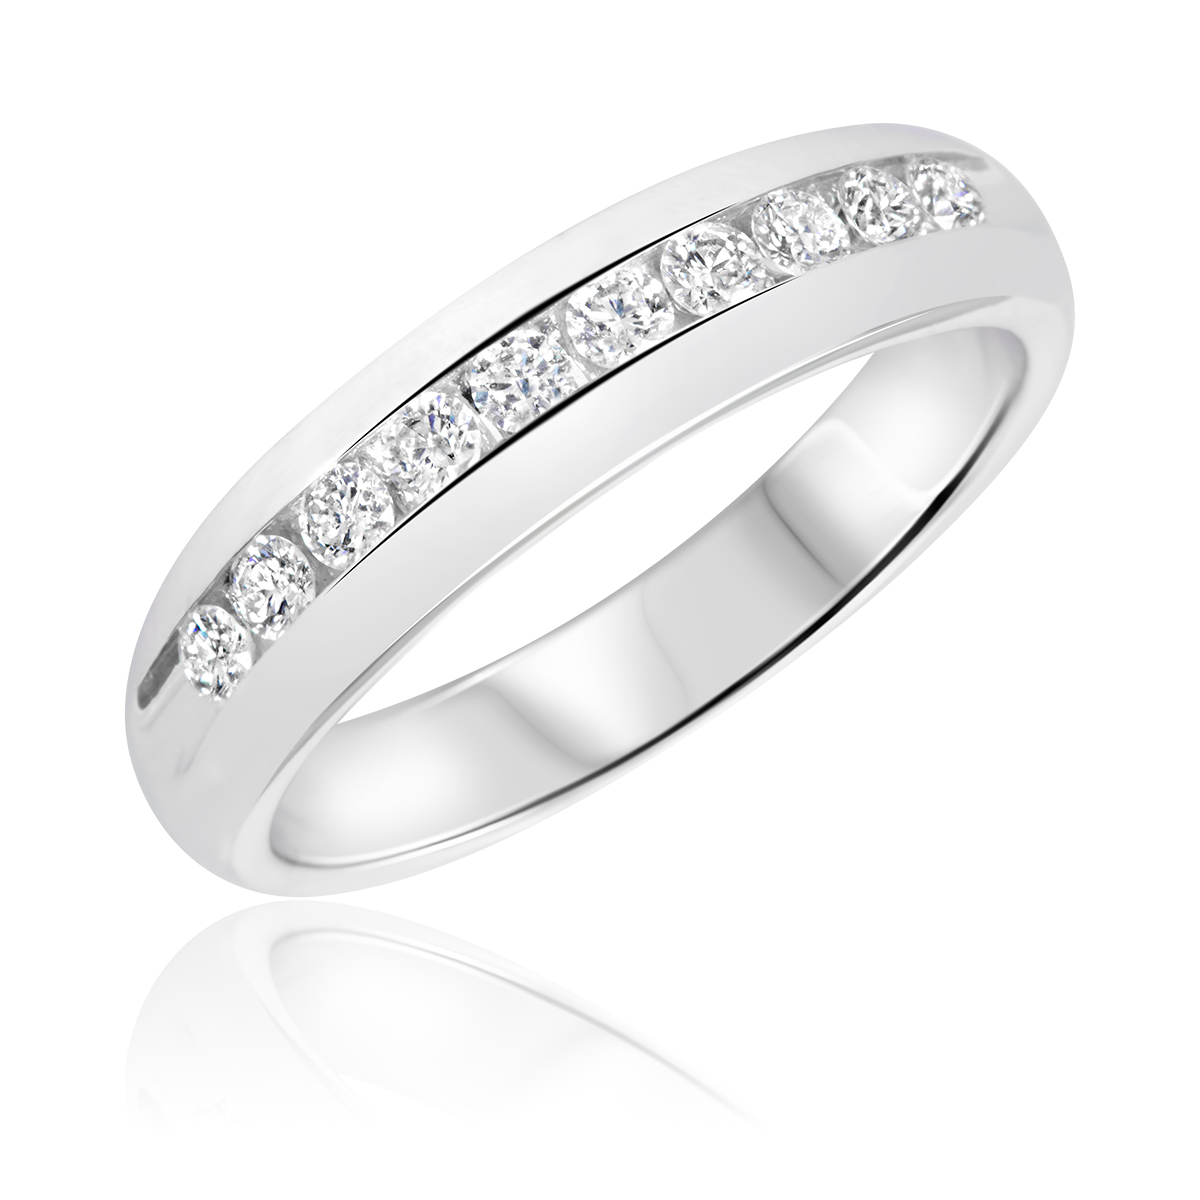 3 4 Carat TW Round Cut Diamond His And Hers Wedding Band Set 14K White Gold